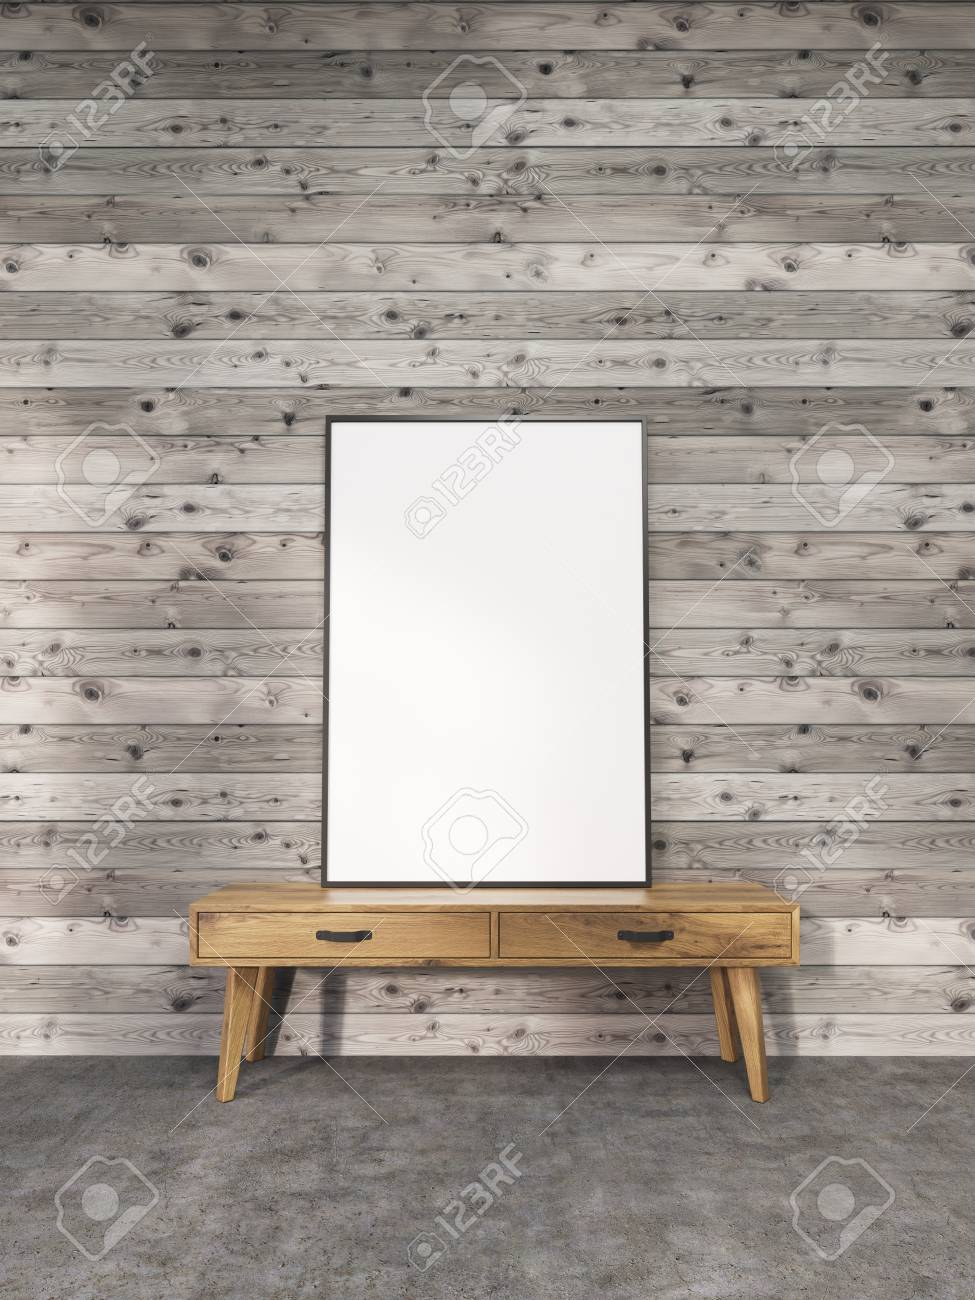 Blank Picture Frame On Small Wooden Stand In Interior With Plank